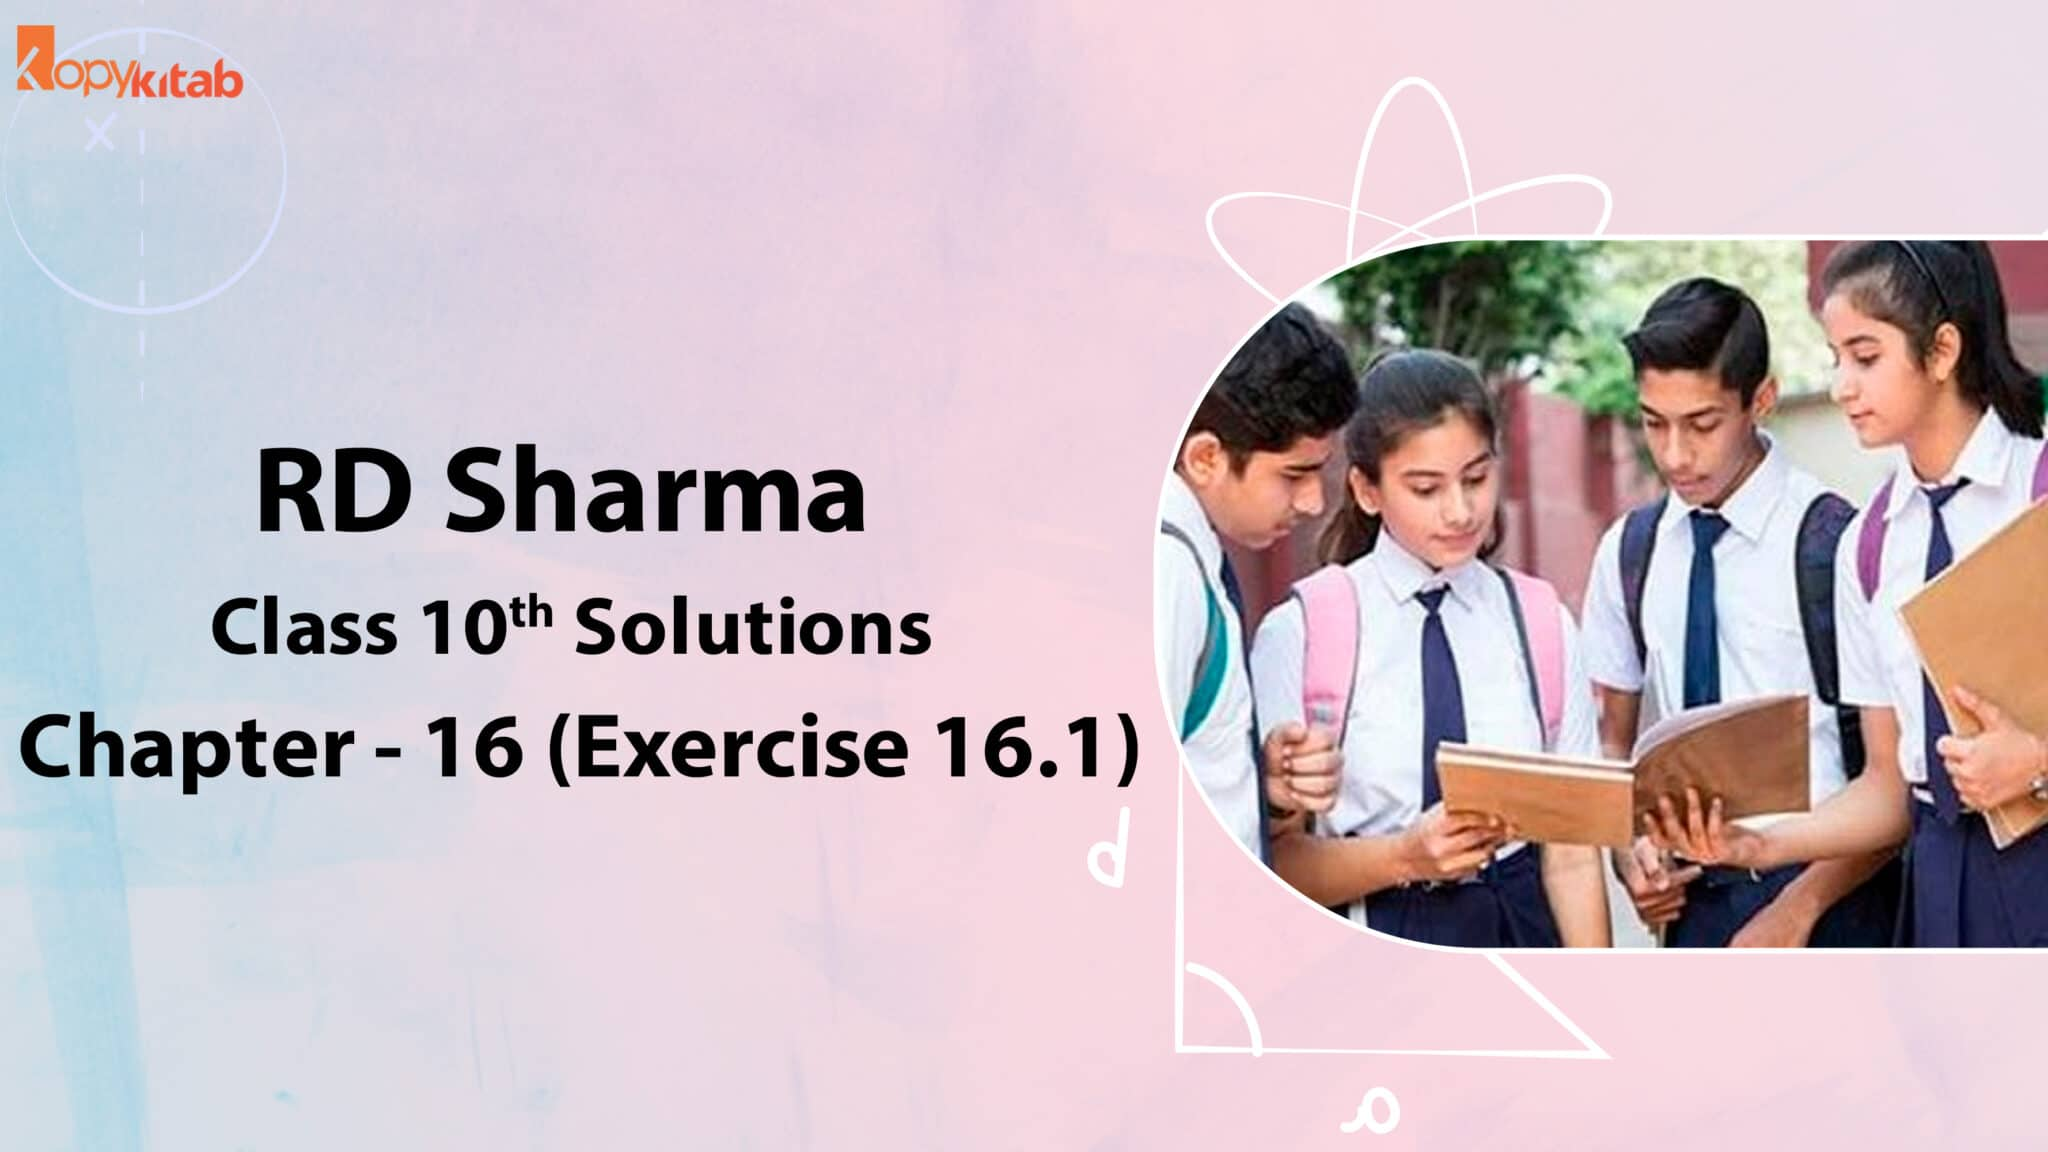 RD Sharma Class 10 Solutions Chapter 16 Exercise 16.1